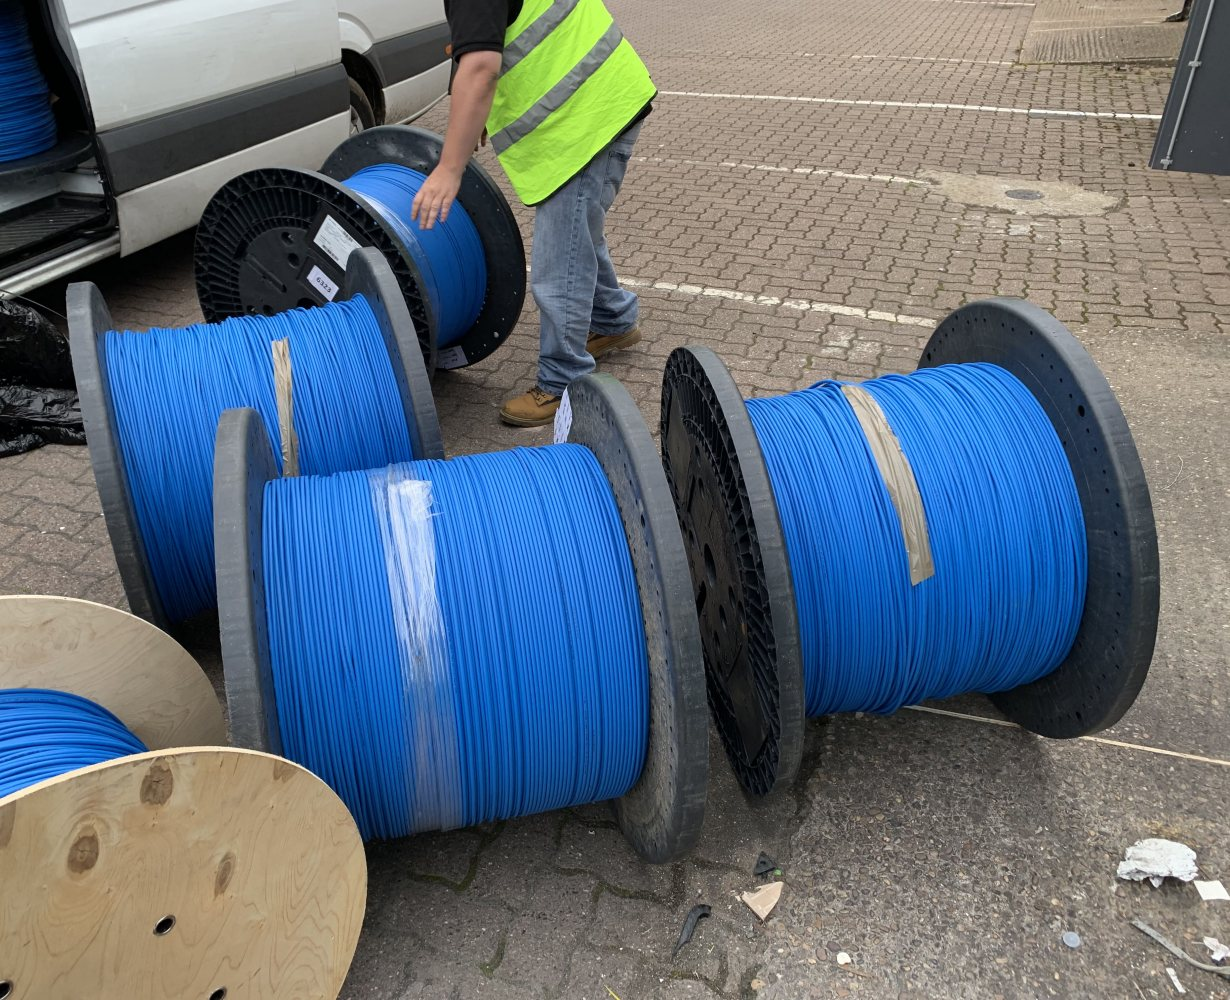 exascale_fibre_optic_cable_drums